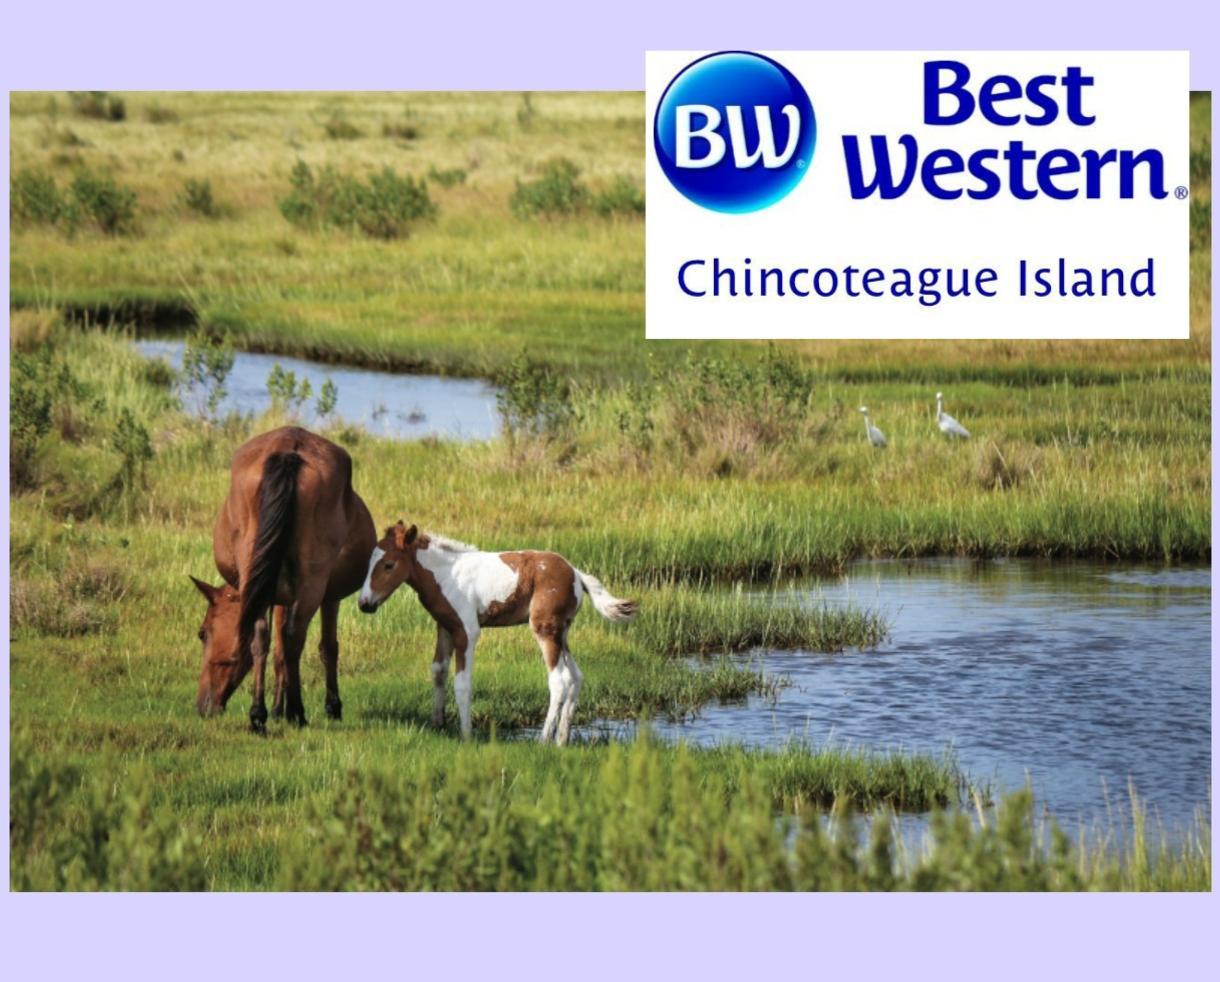 $282+ for 2-Night Chincoteague Island, VA Escape with Hot Breakfast Daily - Valid through AUGUST! (Up to 28% Off)